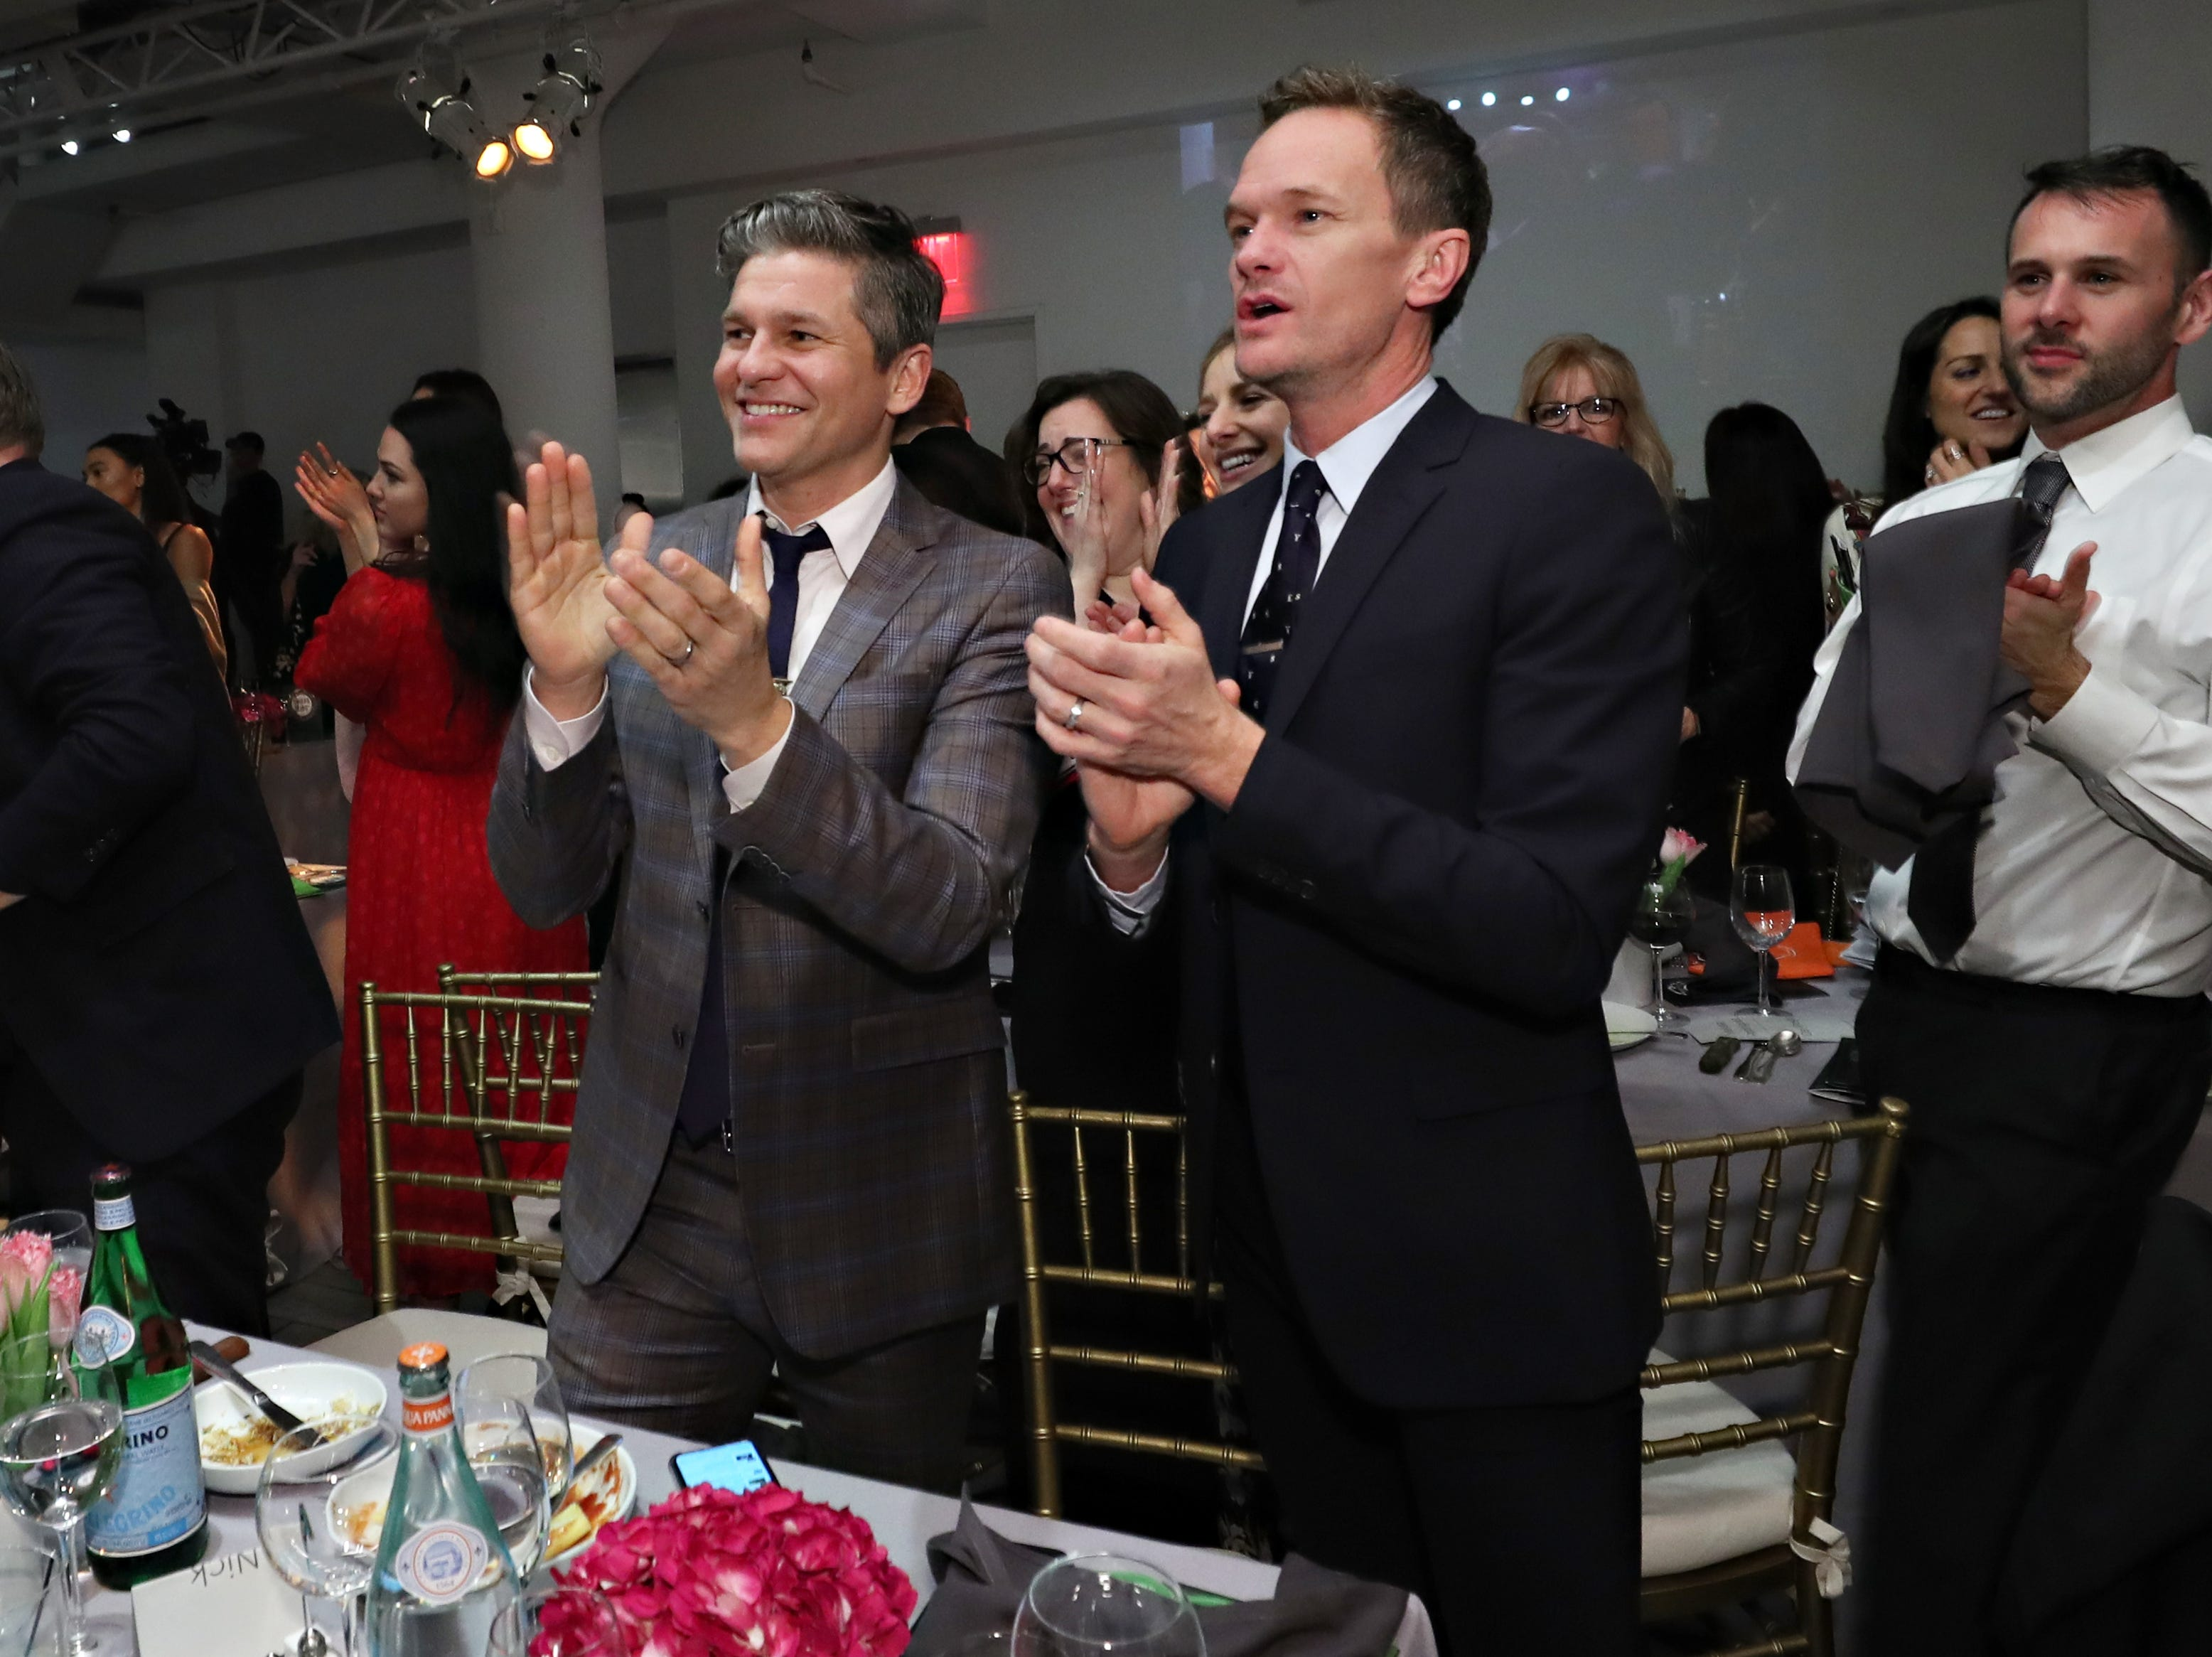 NEW YORK, NY - MARCH 12:  David Burtka and Neil Patrick Harris attend the 2019 Chefs For Kids' Cancer at Metropolitan Pavilion Metro West on March 12, 2019 in New York City.  (Photo by Cindy Ord/Getty Images  for Cookies for Kids' Cancer) ORG XMIT: 775308364 ORIG FILE ID: 1130159529